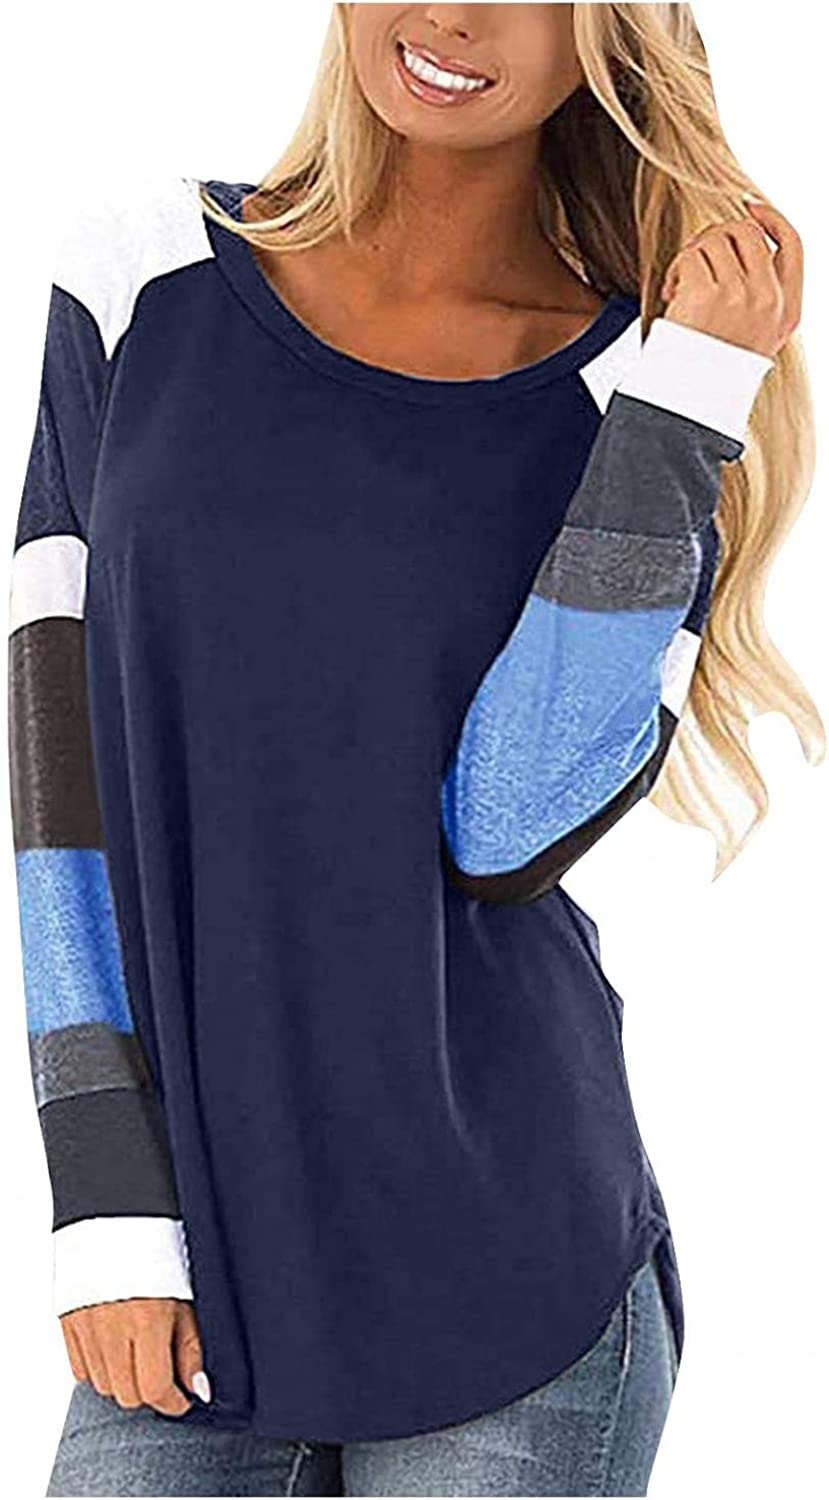 felwors Long Sleeve Shirts for Women, Women Long Sleeve T Shirts Tops Casual Twist Knot Color Block Tunic Blouse Tee